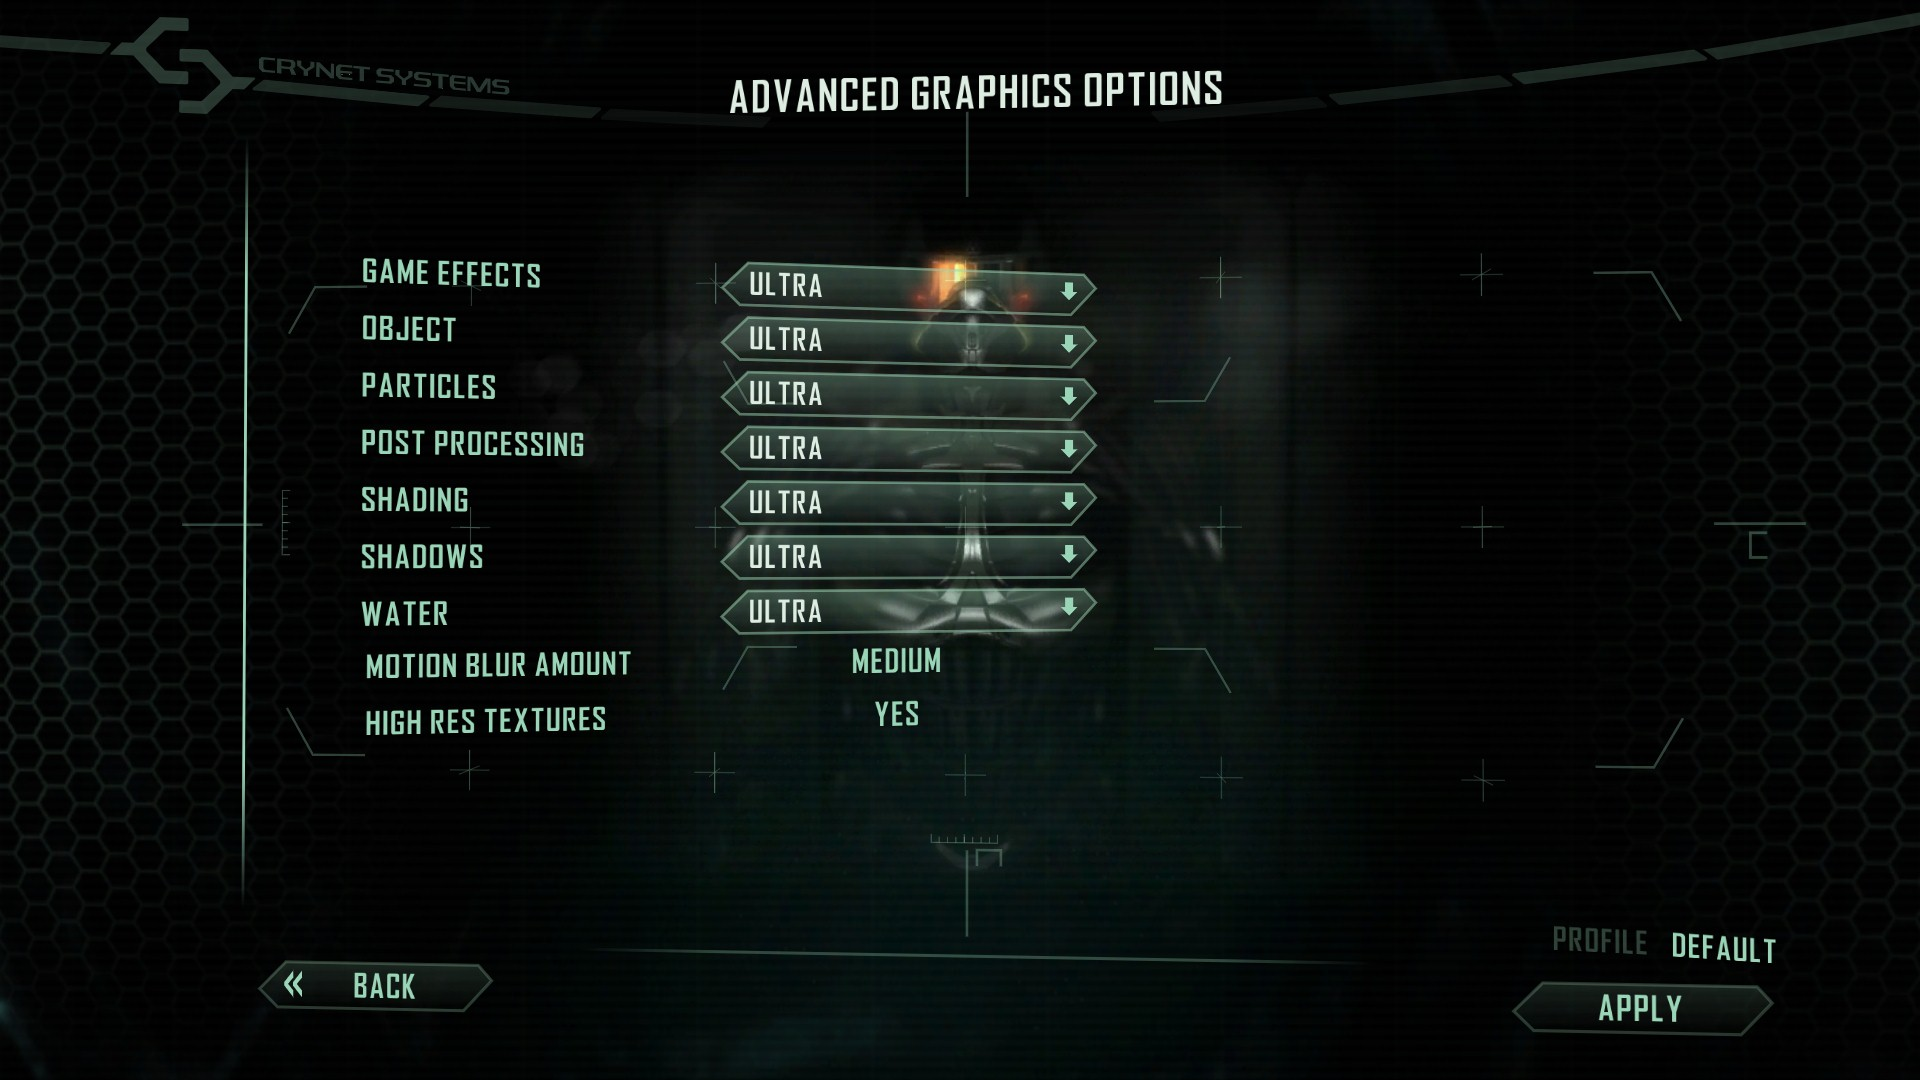 Crysis 2 advanced graphics options application 1.7 download